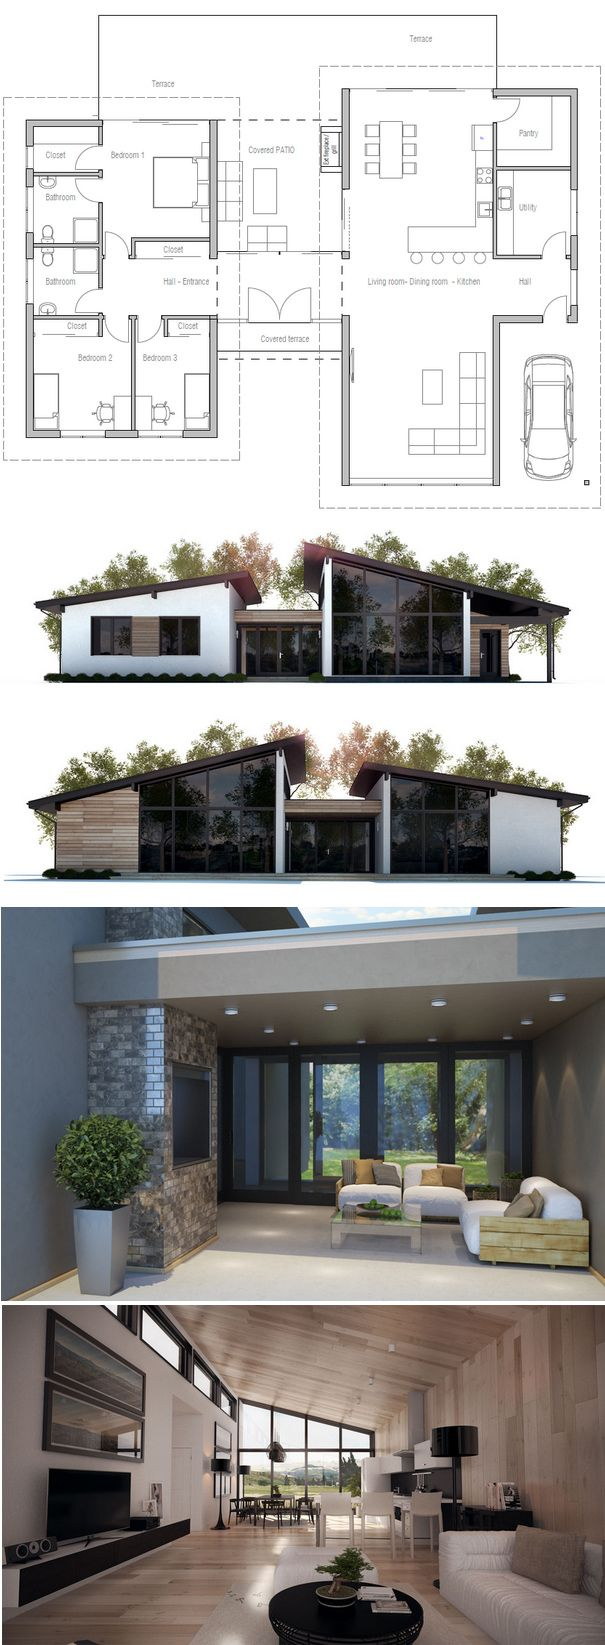 Things I love about this design: the dog walk concept, modern lines, car port that allows the home owner to enter the main area of the house but still be conveniently located to unload groceries.